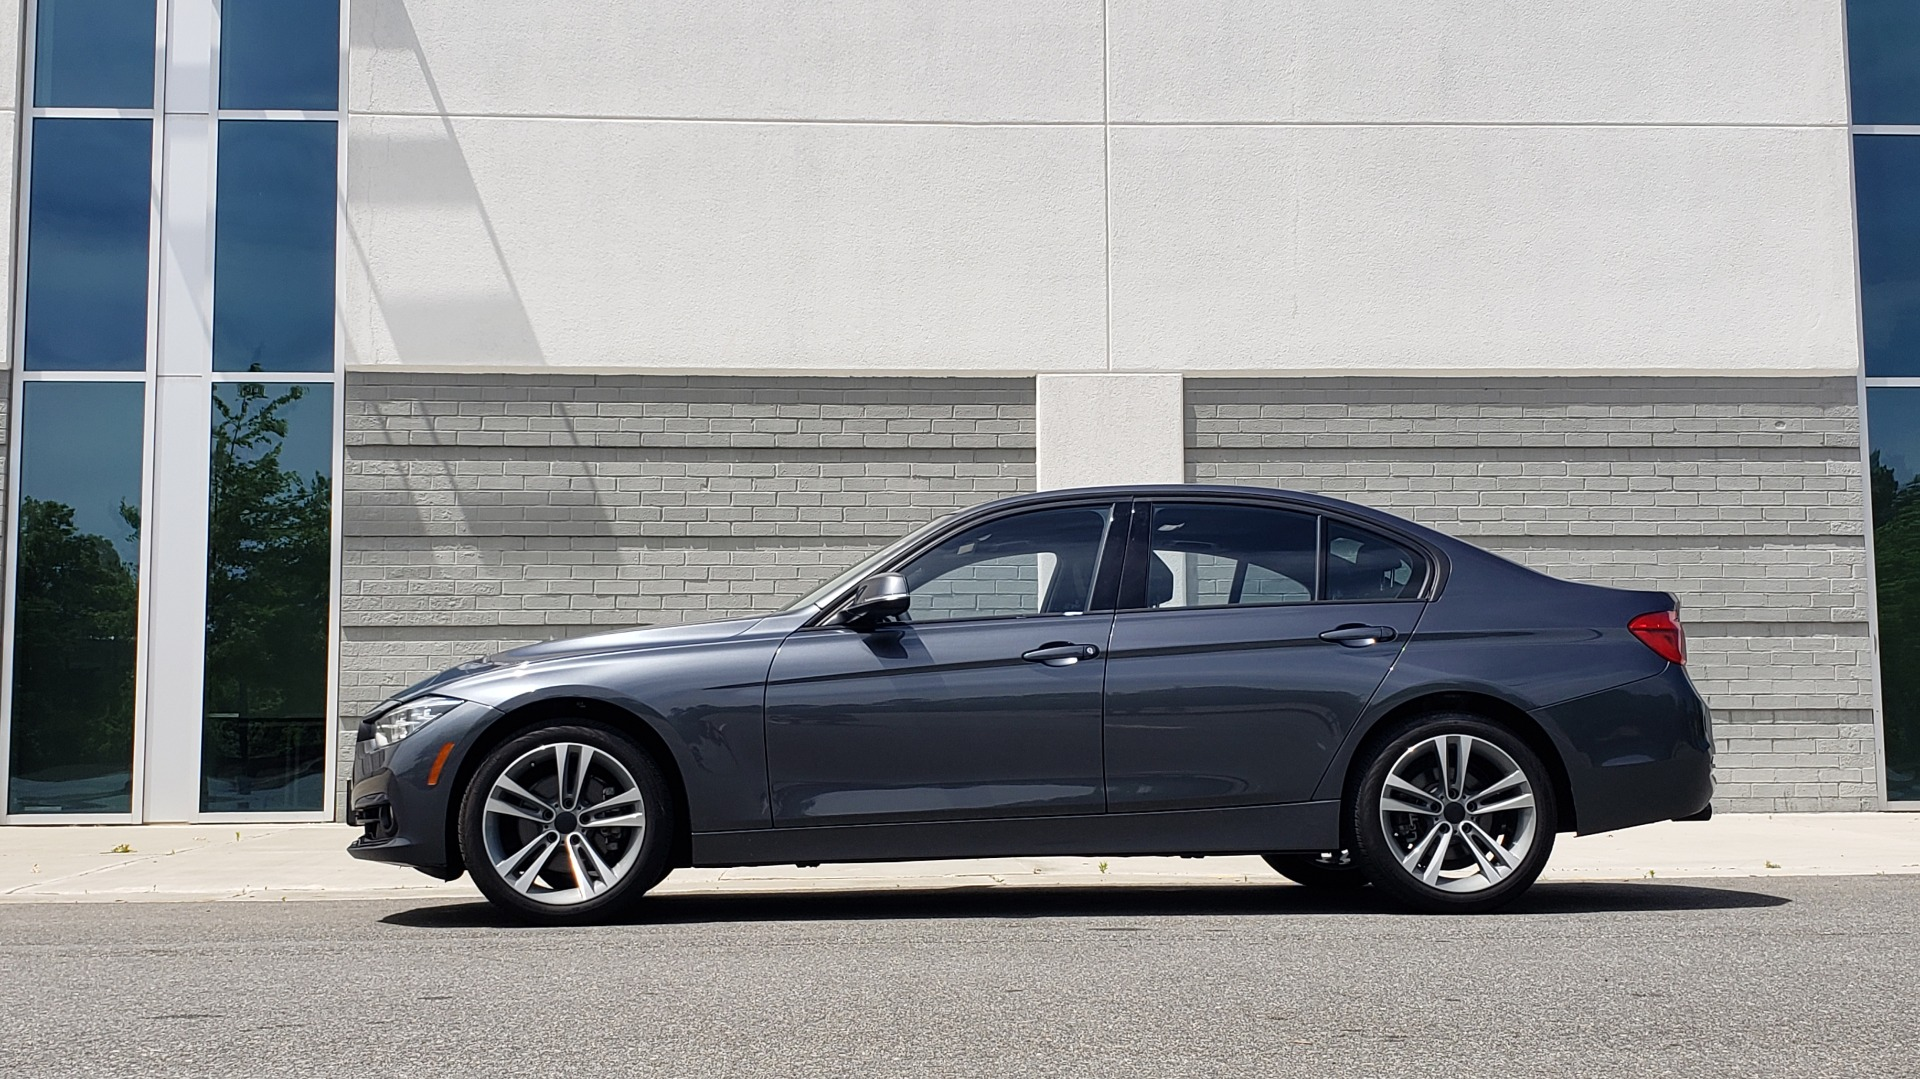 Used 2018 BMW 3 SERIES 330I XDRIVE / CONV PKG / SUNROOF / SPORT STS / HTD STS / REARVIEW for sale $28,495 at Formula Imports in Charlotte NC 28227 3